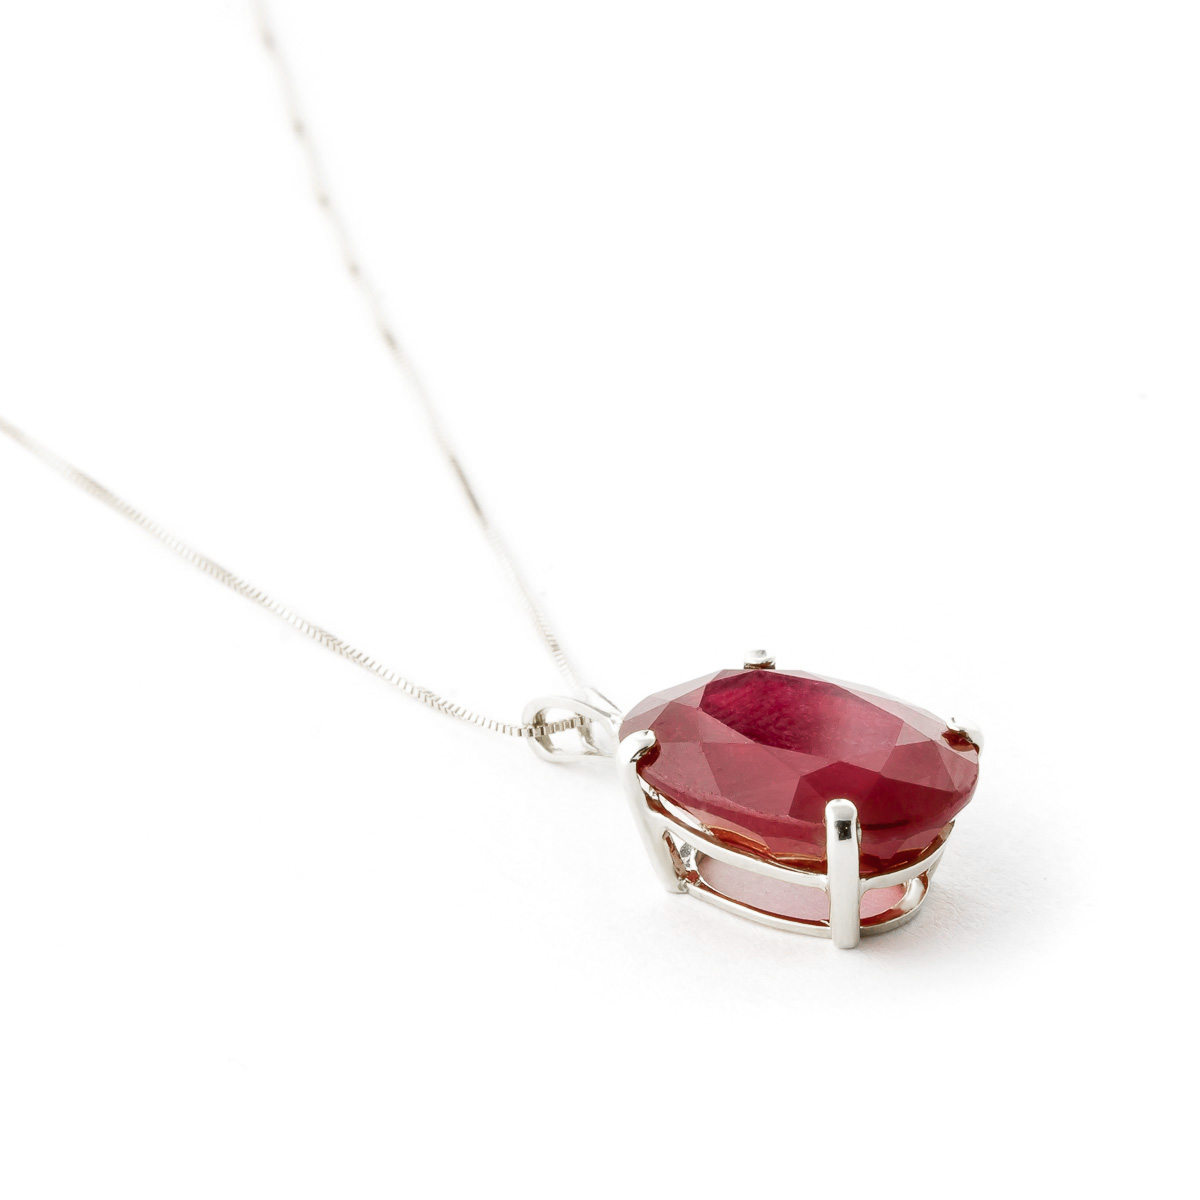 Oval Cut Ruby Pendant Necklace 7.7ct in 9ct White Gold